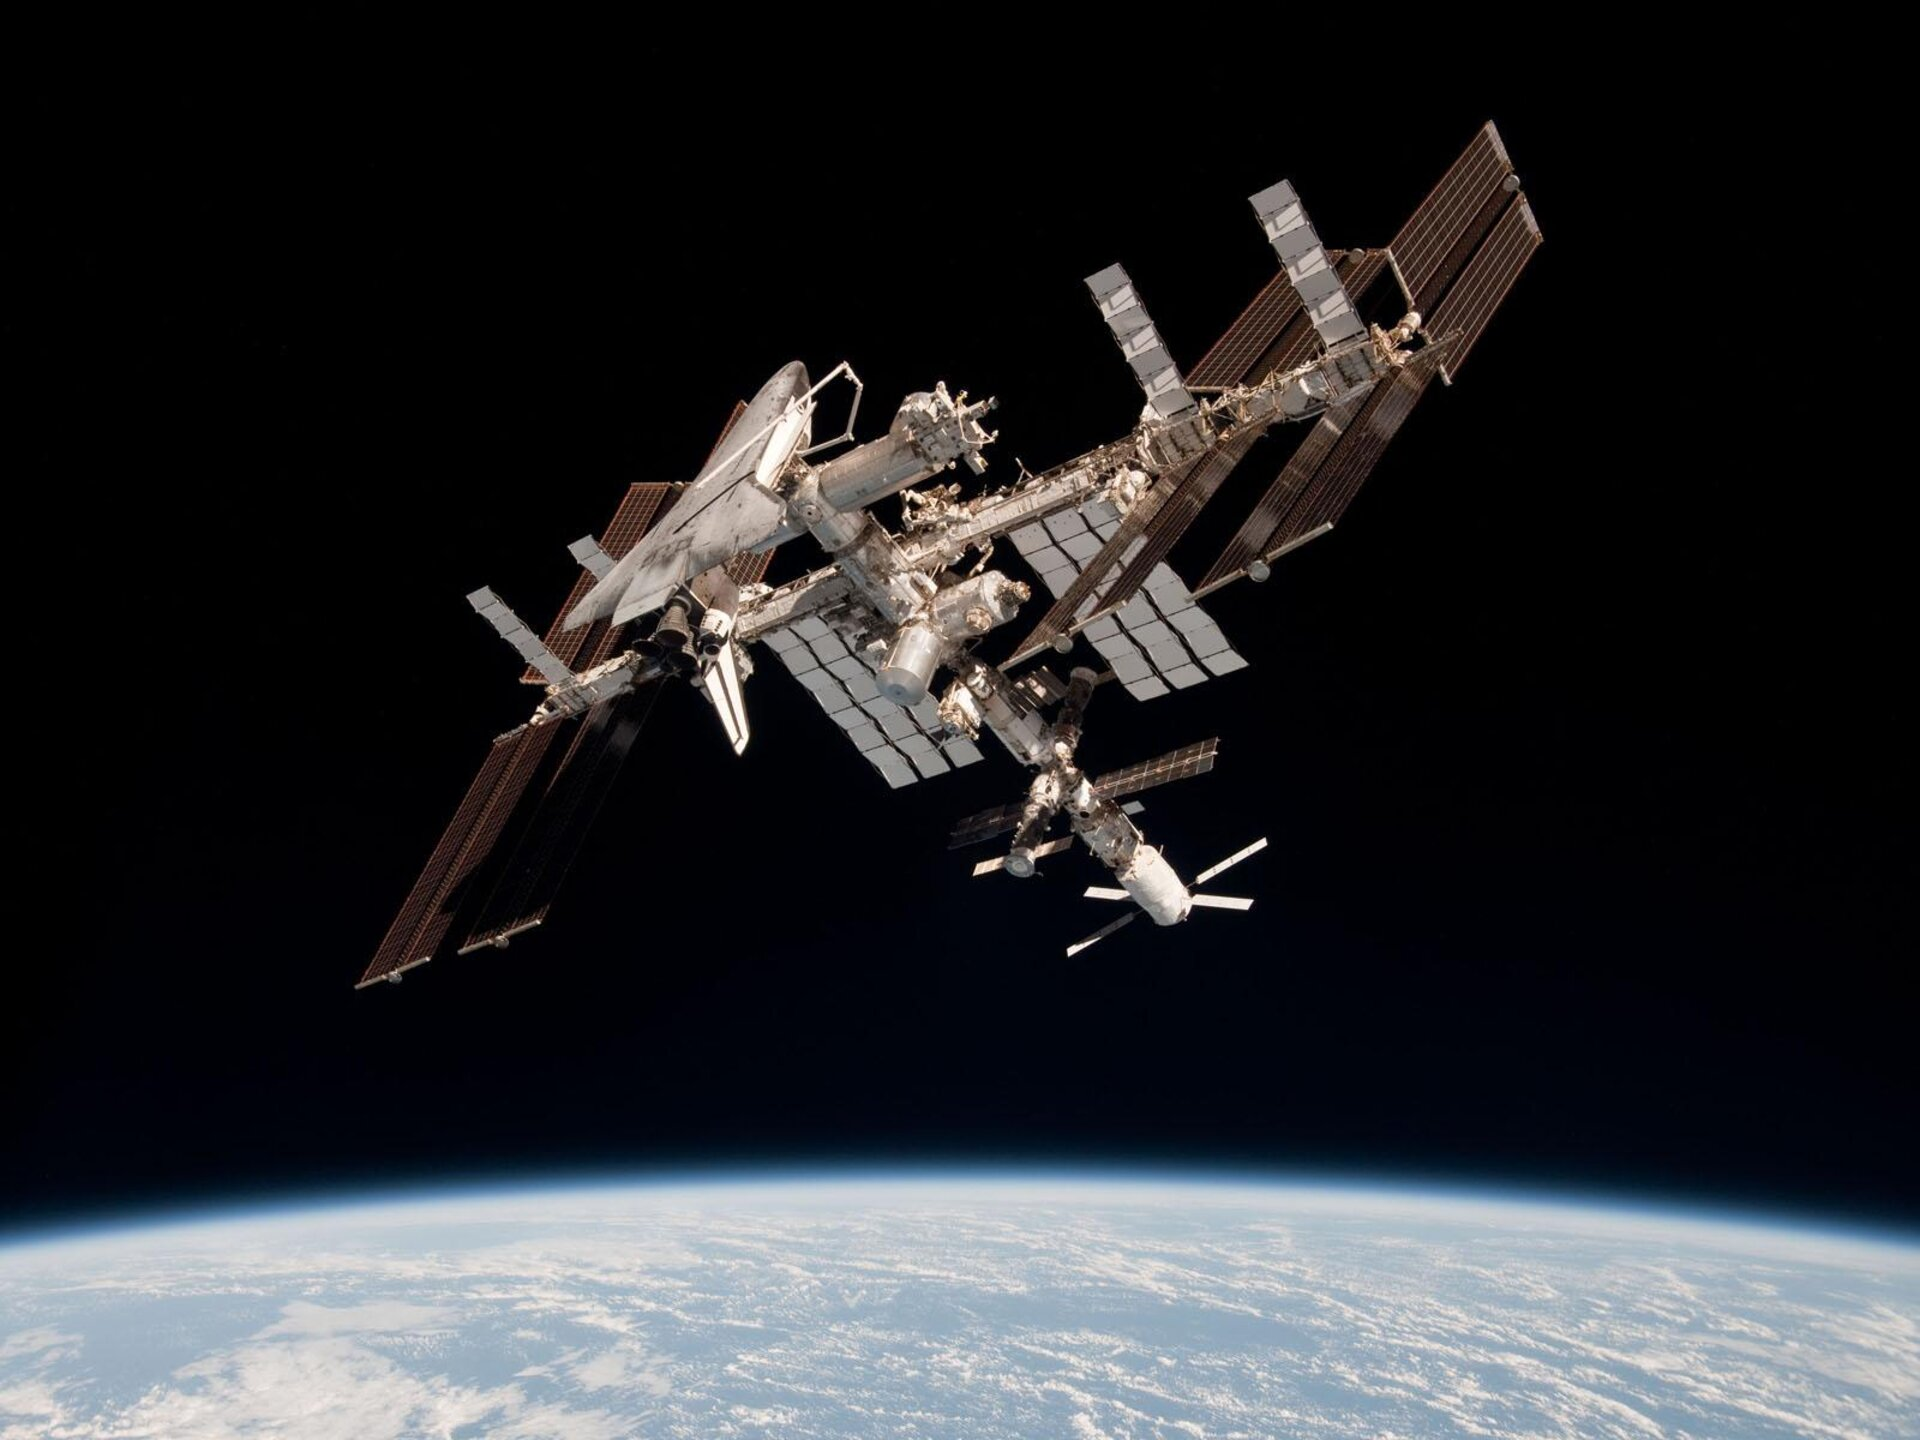 ISS with ATV Johannes Kepler and Shuttle Endeavour docked